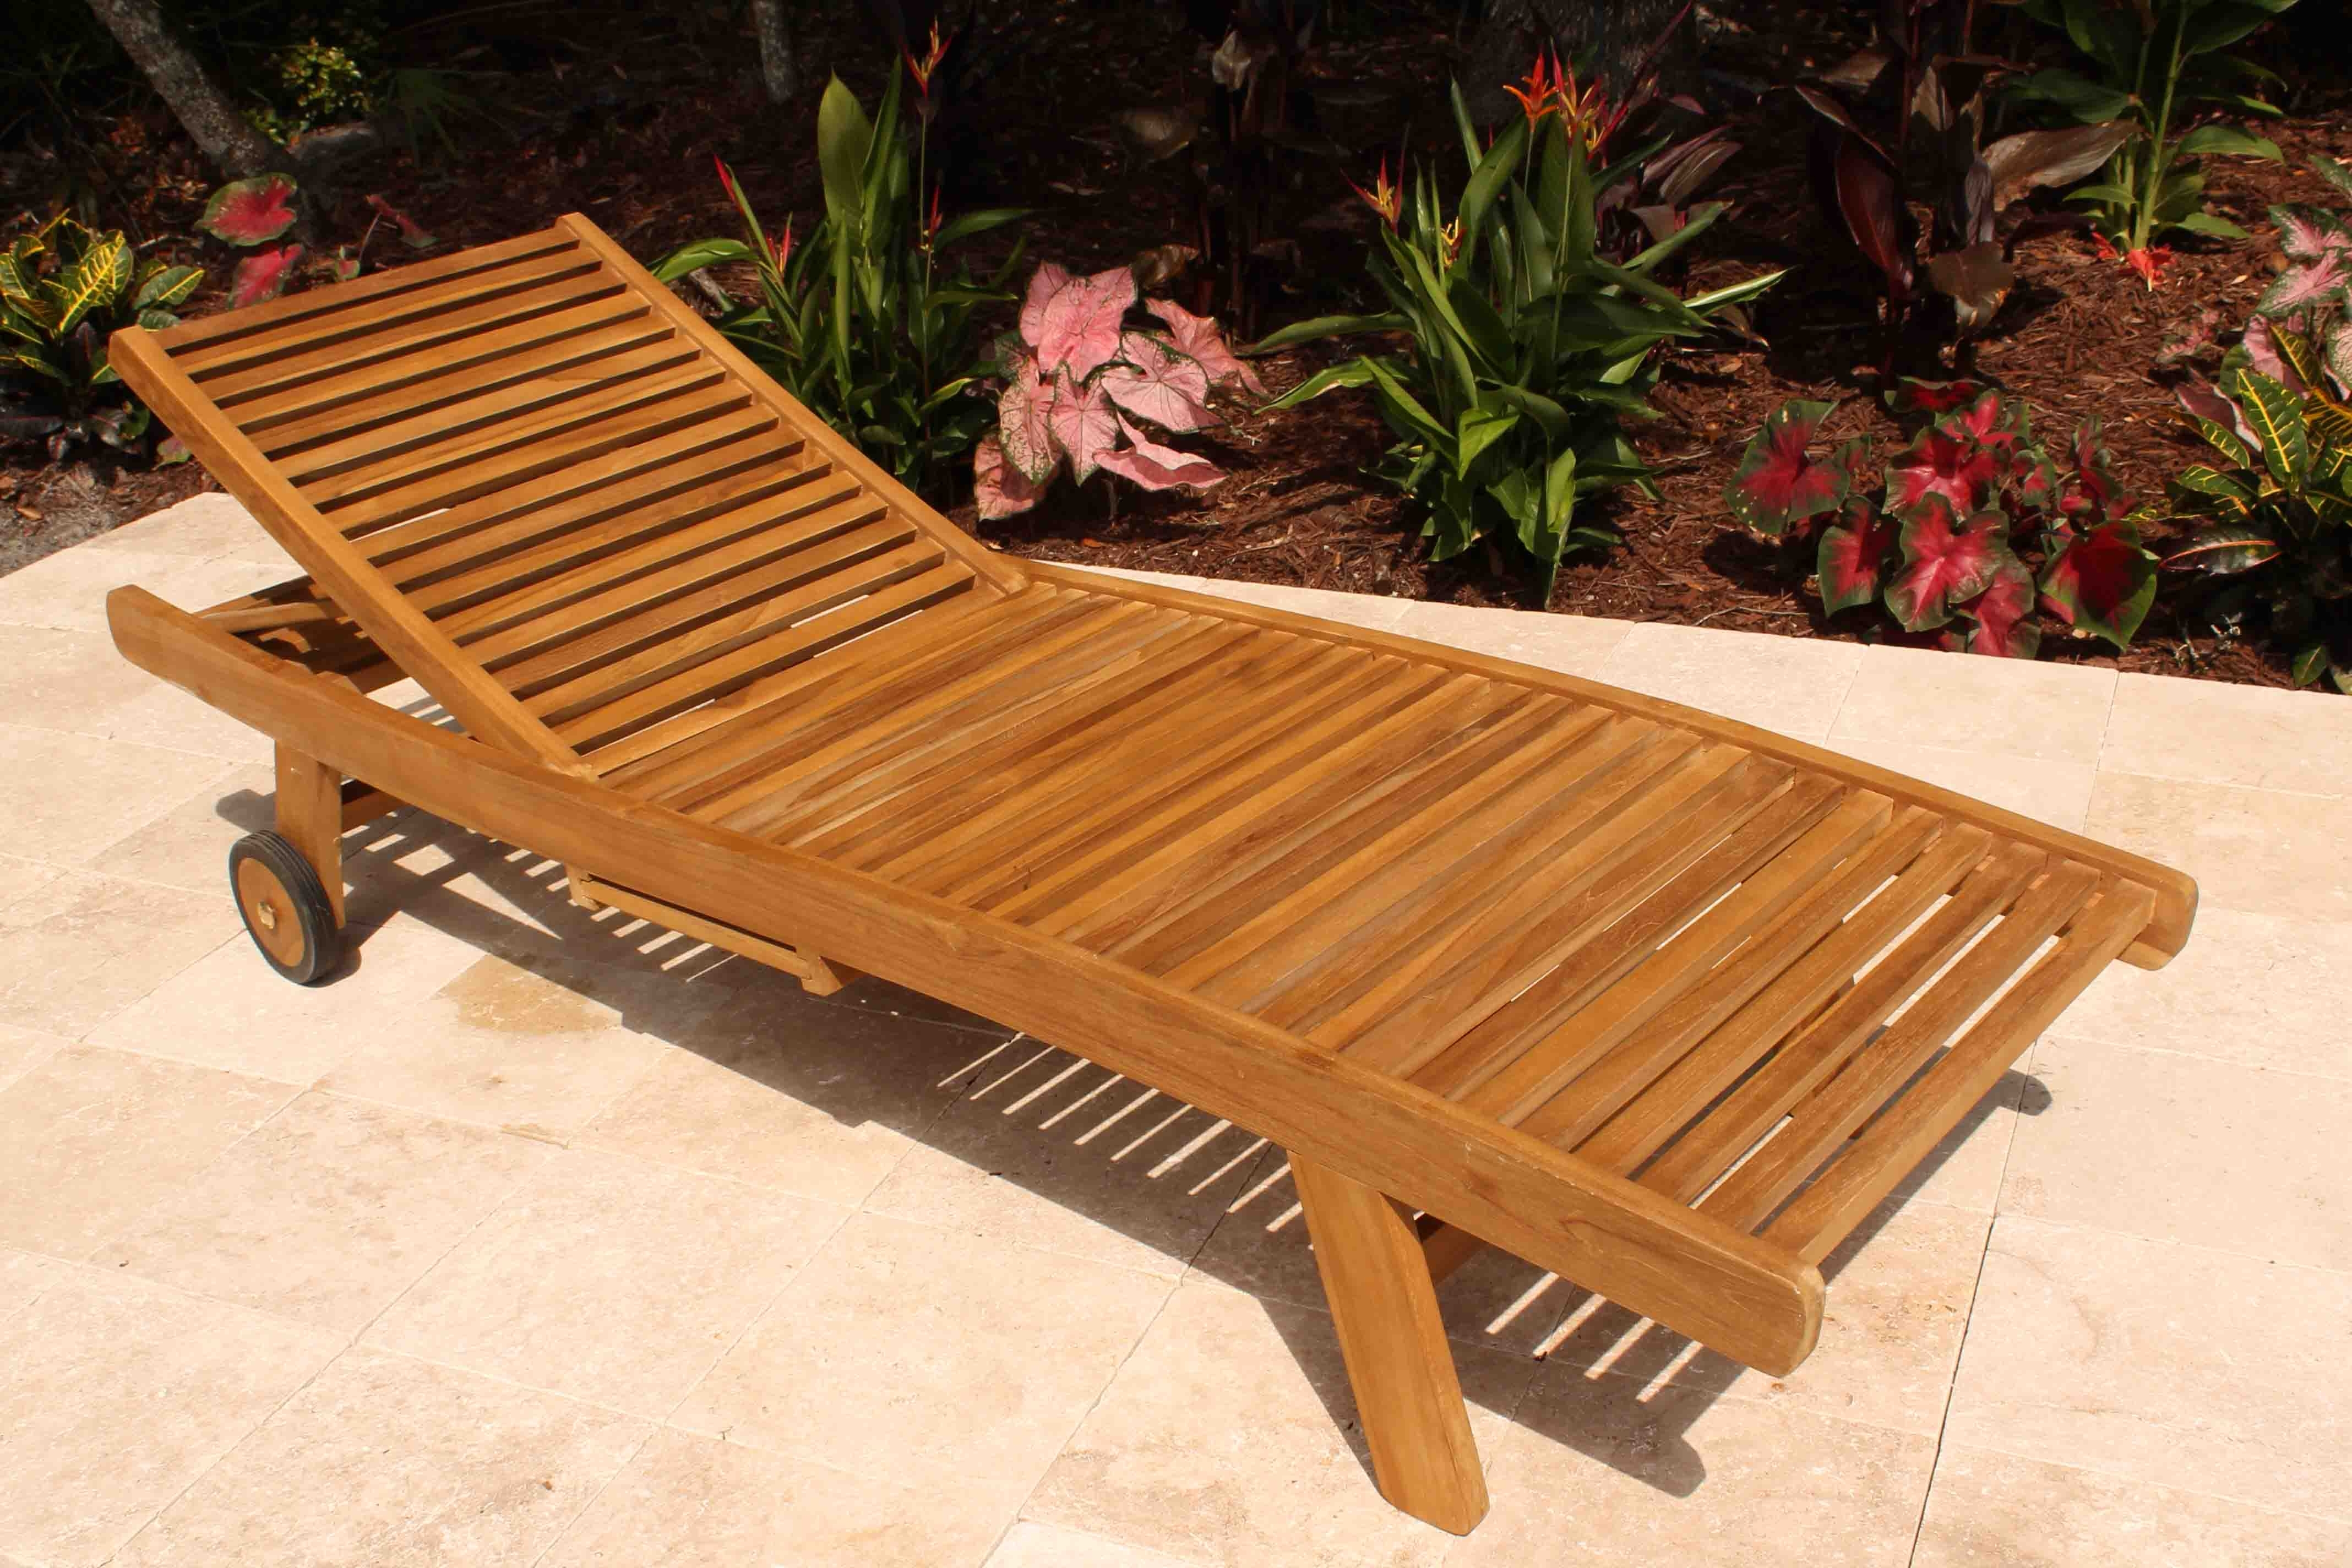 Wood Chaise Lounges Within Preferred Teak Wood Chaise Lounge Chair — Teak Furnitures : Teak Chaise (View 15 of 15)